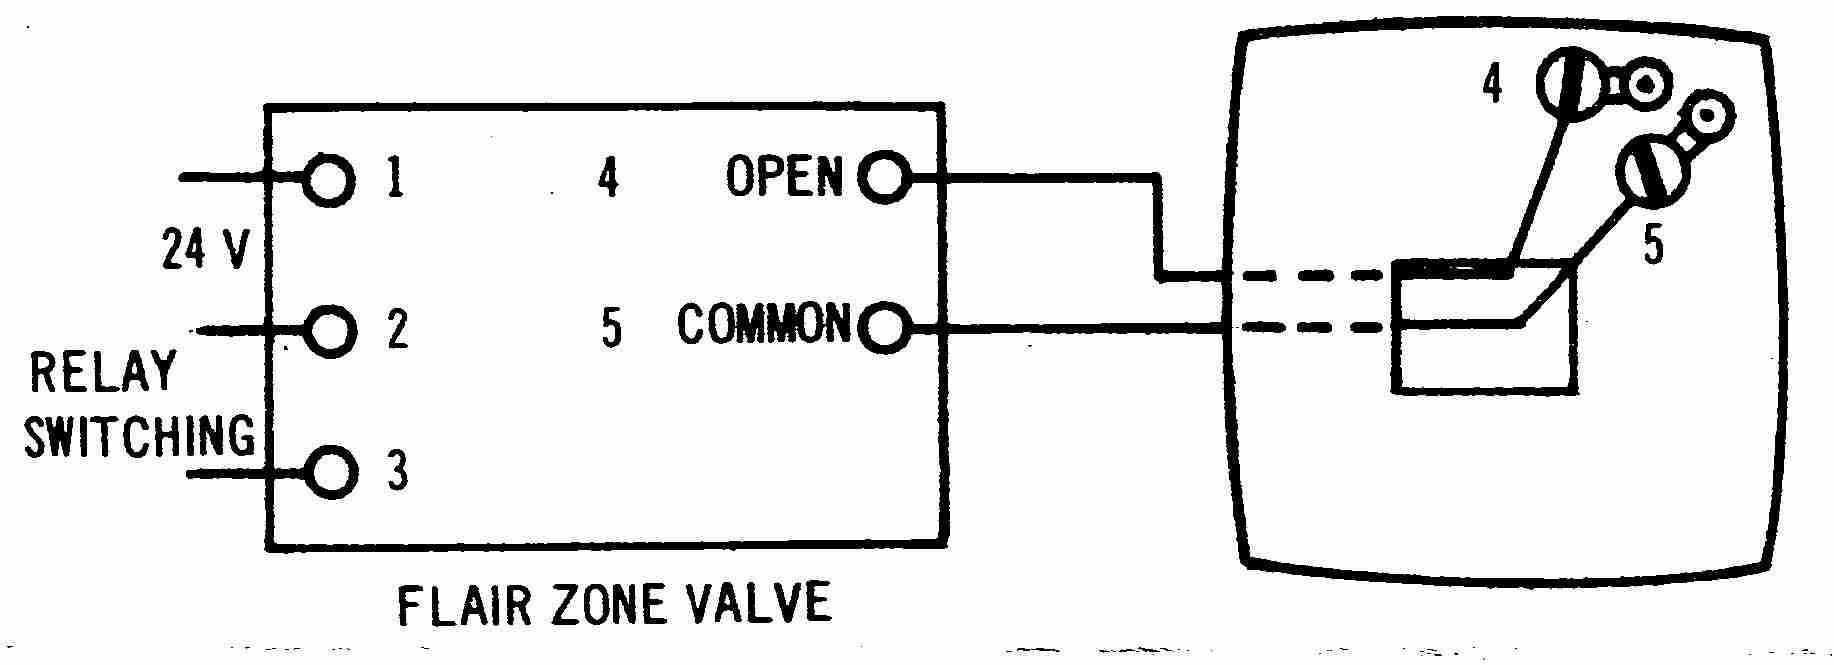 Flair2w_001_DJFc1 room thermostat wiring diagrams for hvac systems fcu wiring diagram at alyssarenee.co